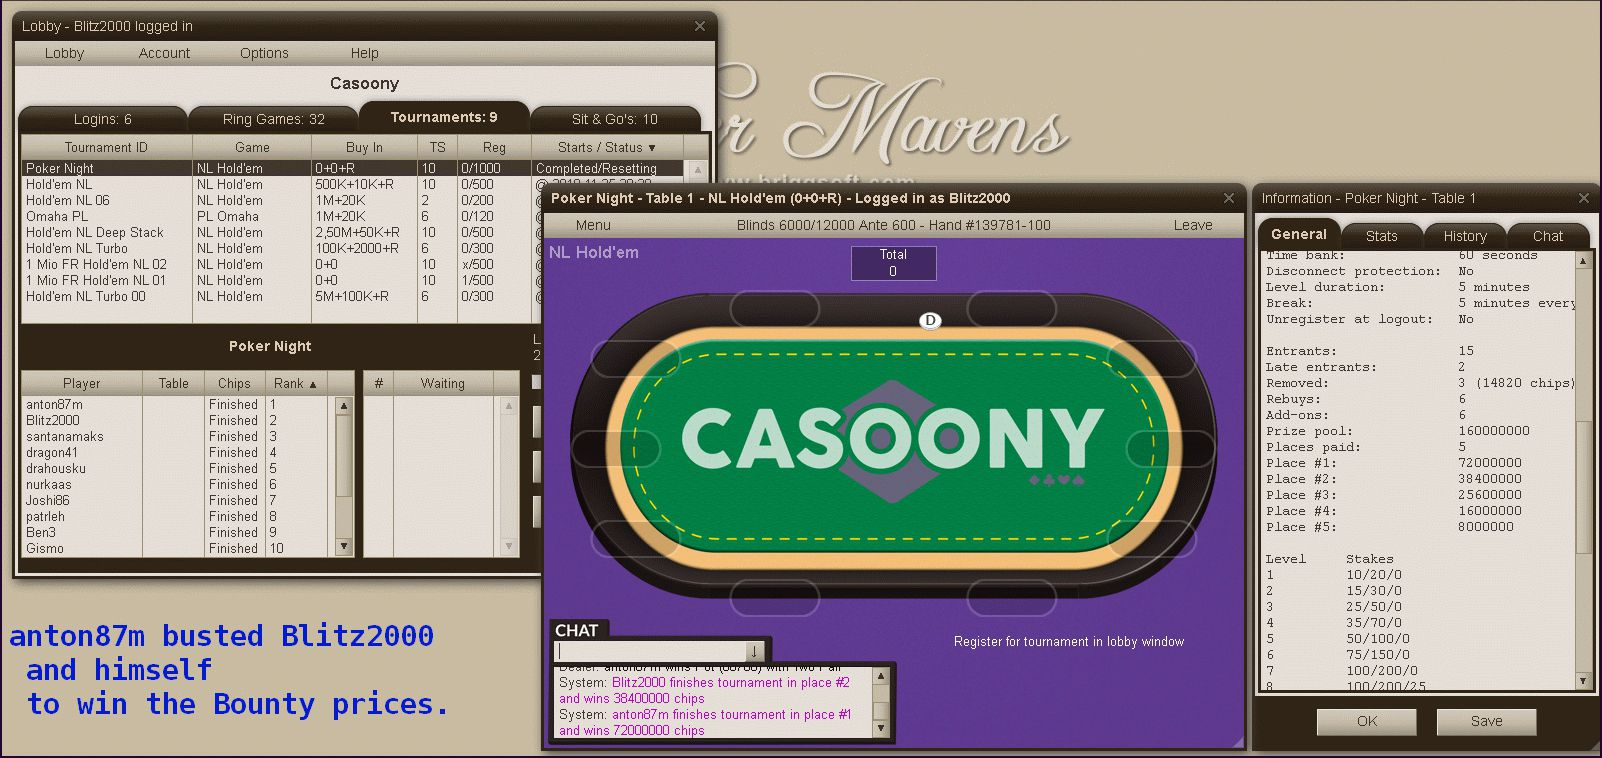 Casoony_Poker_Lobby-PokerNight_20191124_2143_2NDPLACE_SHOW.gif